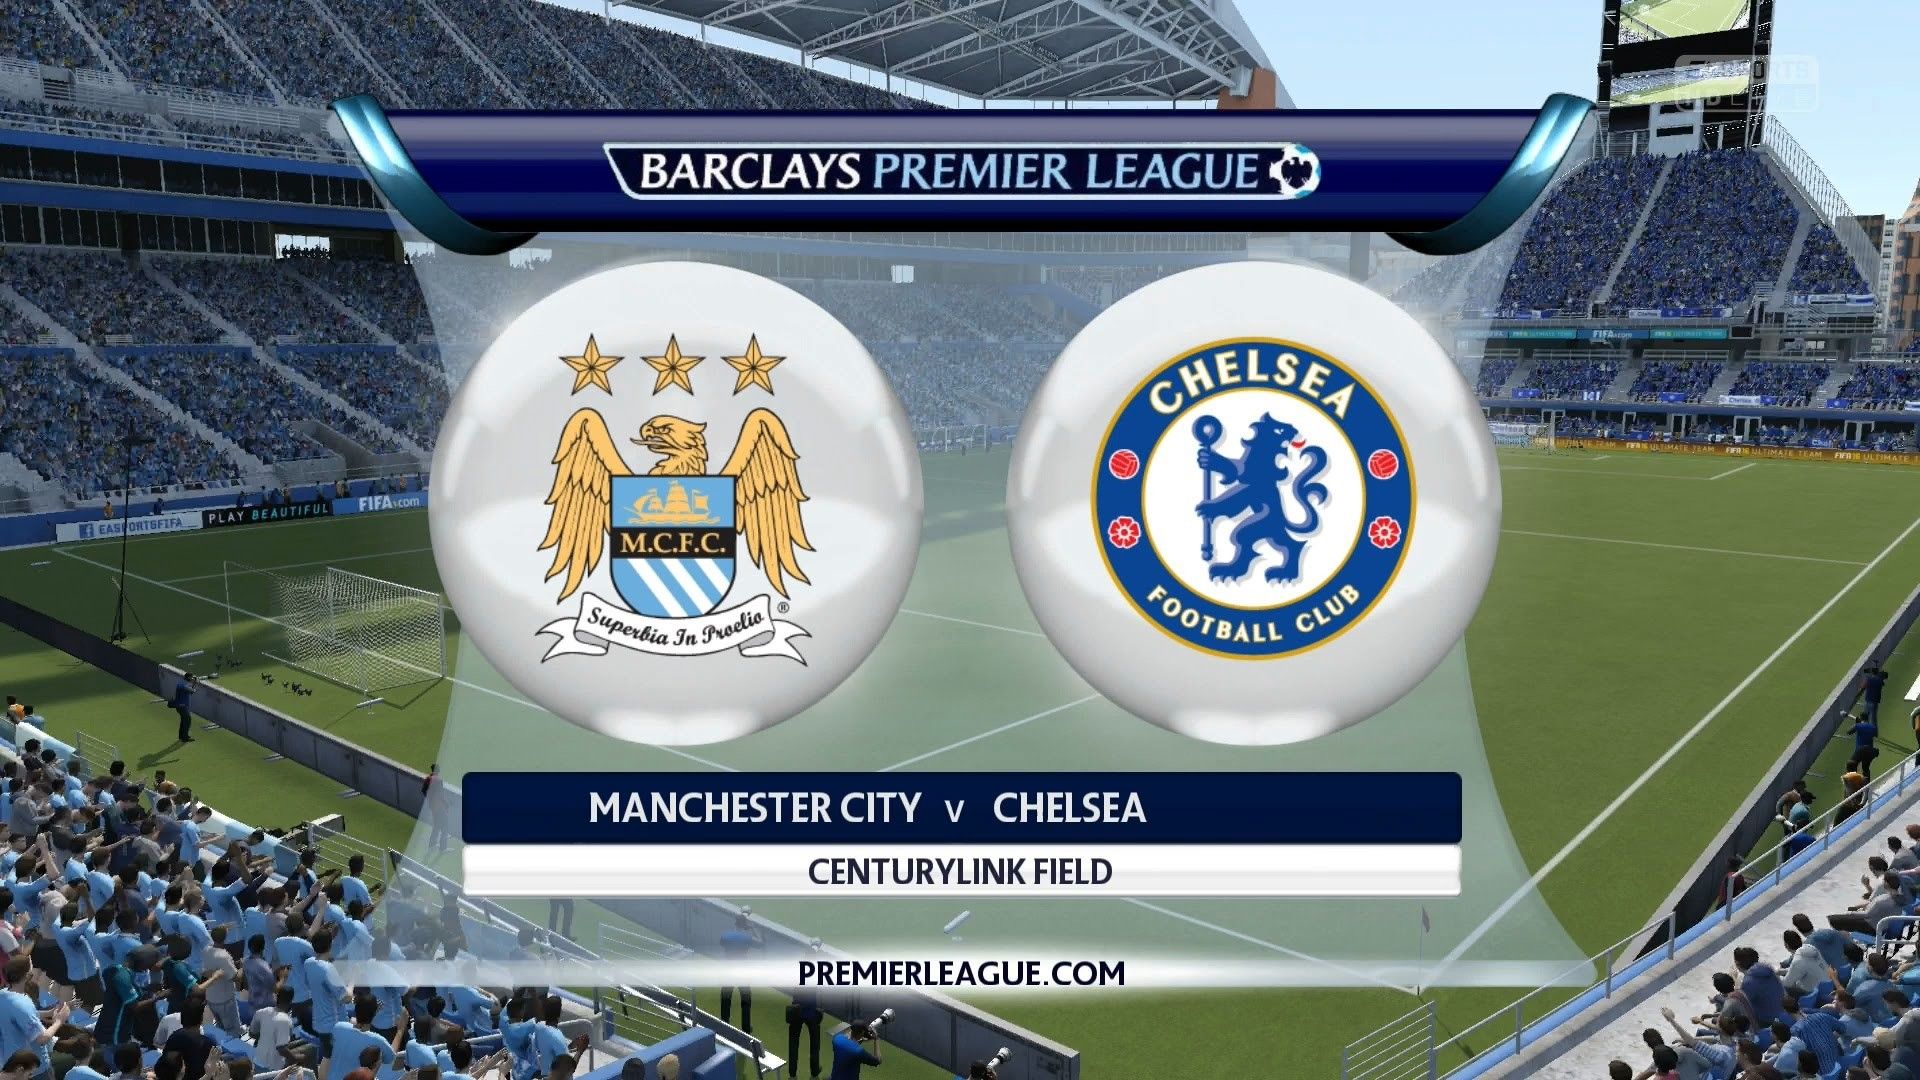 Chelsea Vs Manchester City Fc: Chelsea HD Wallpapers 1080p (75+ Images